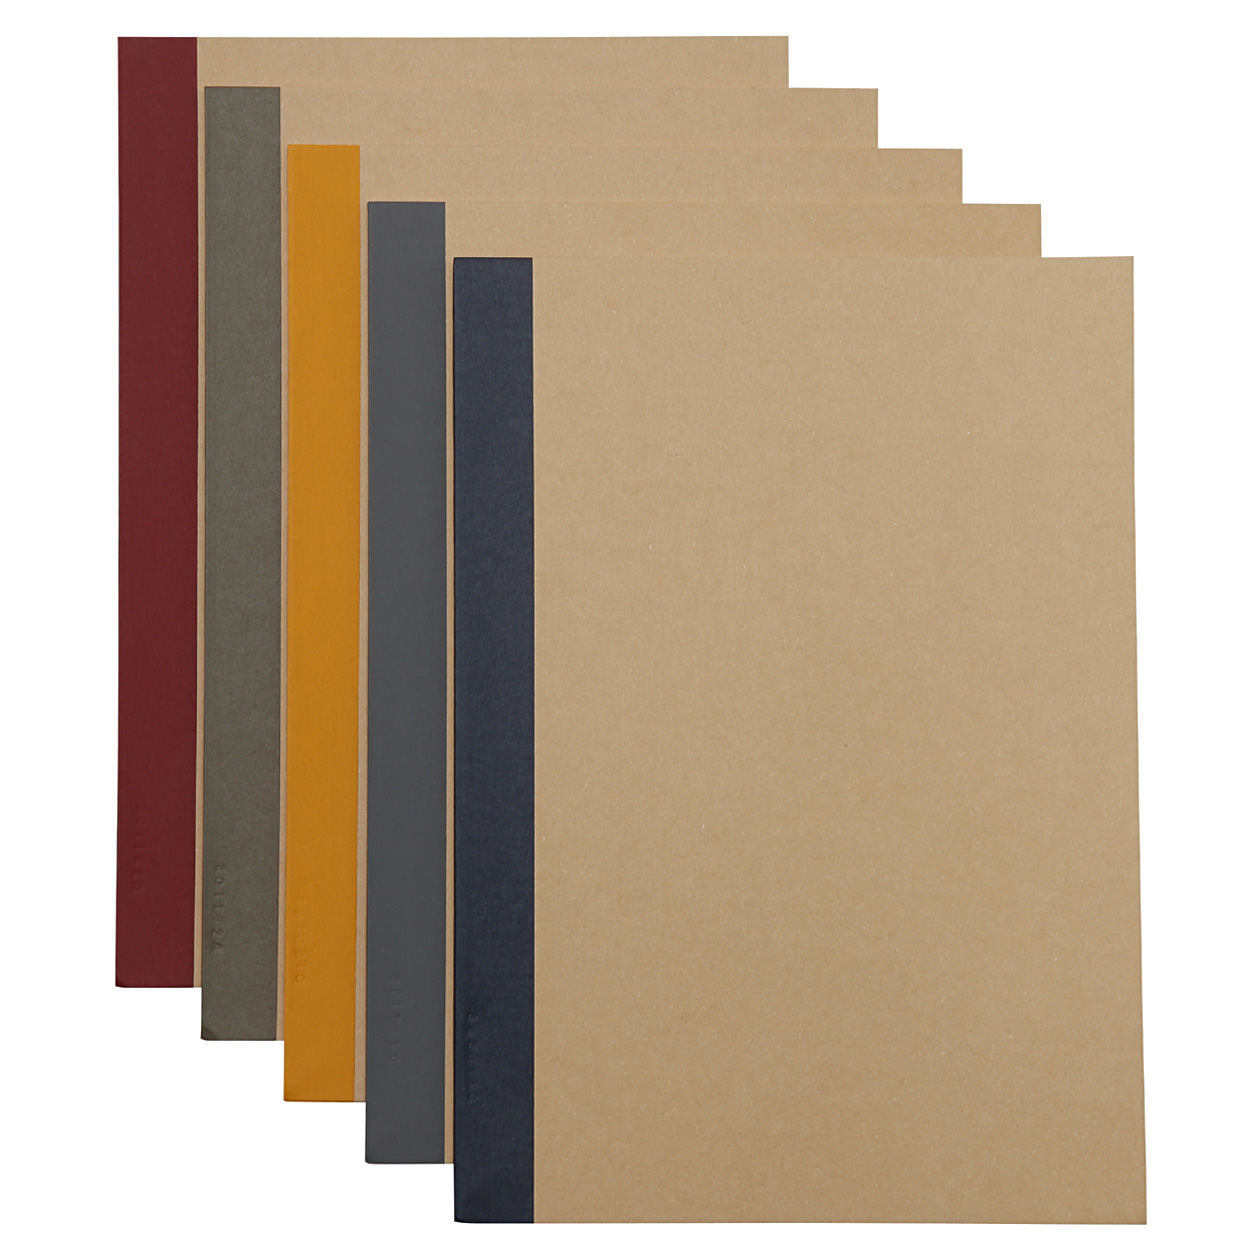 B5 Notebooks - 5 pack